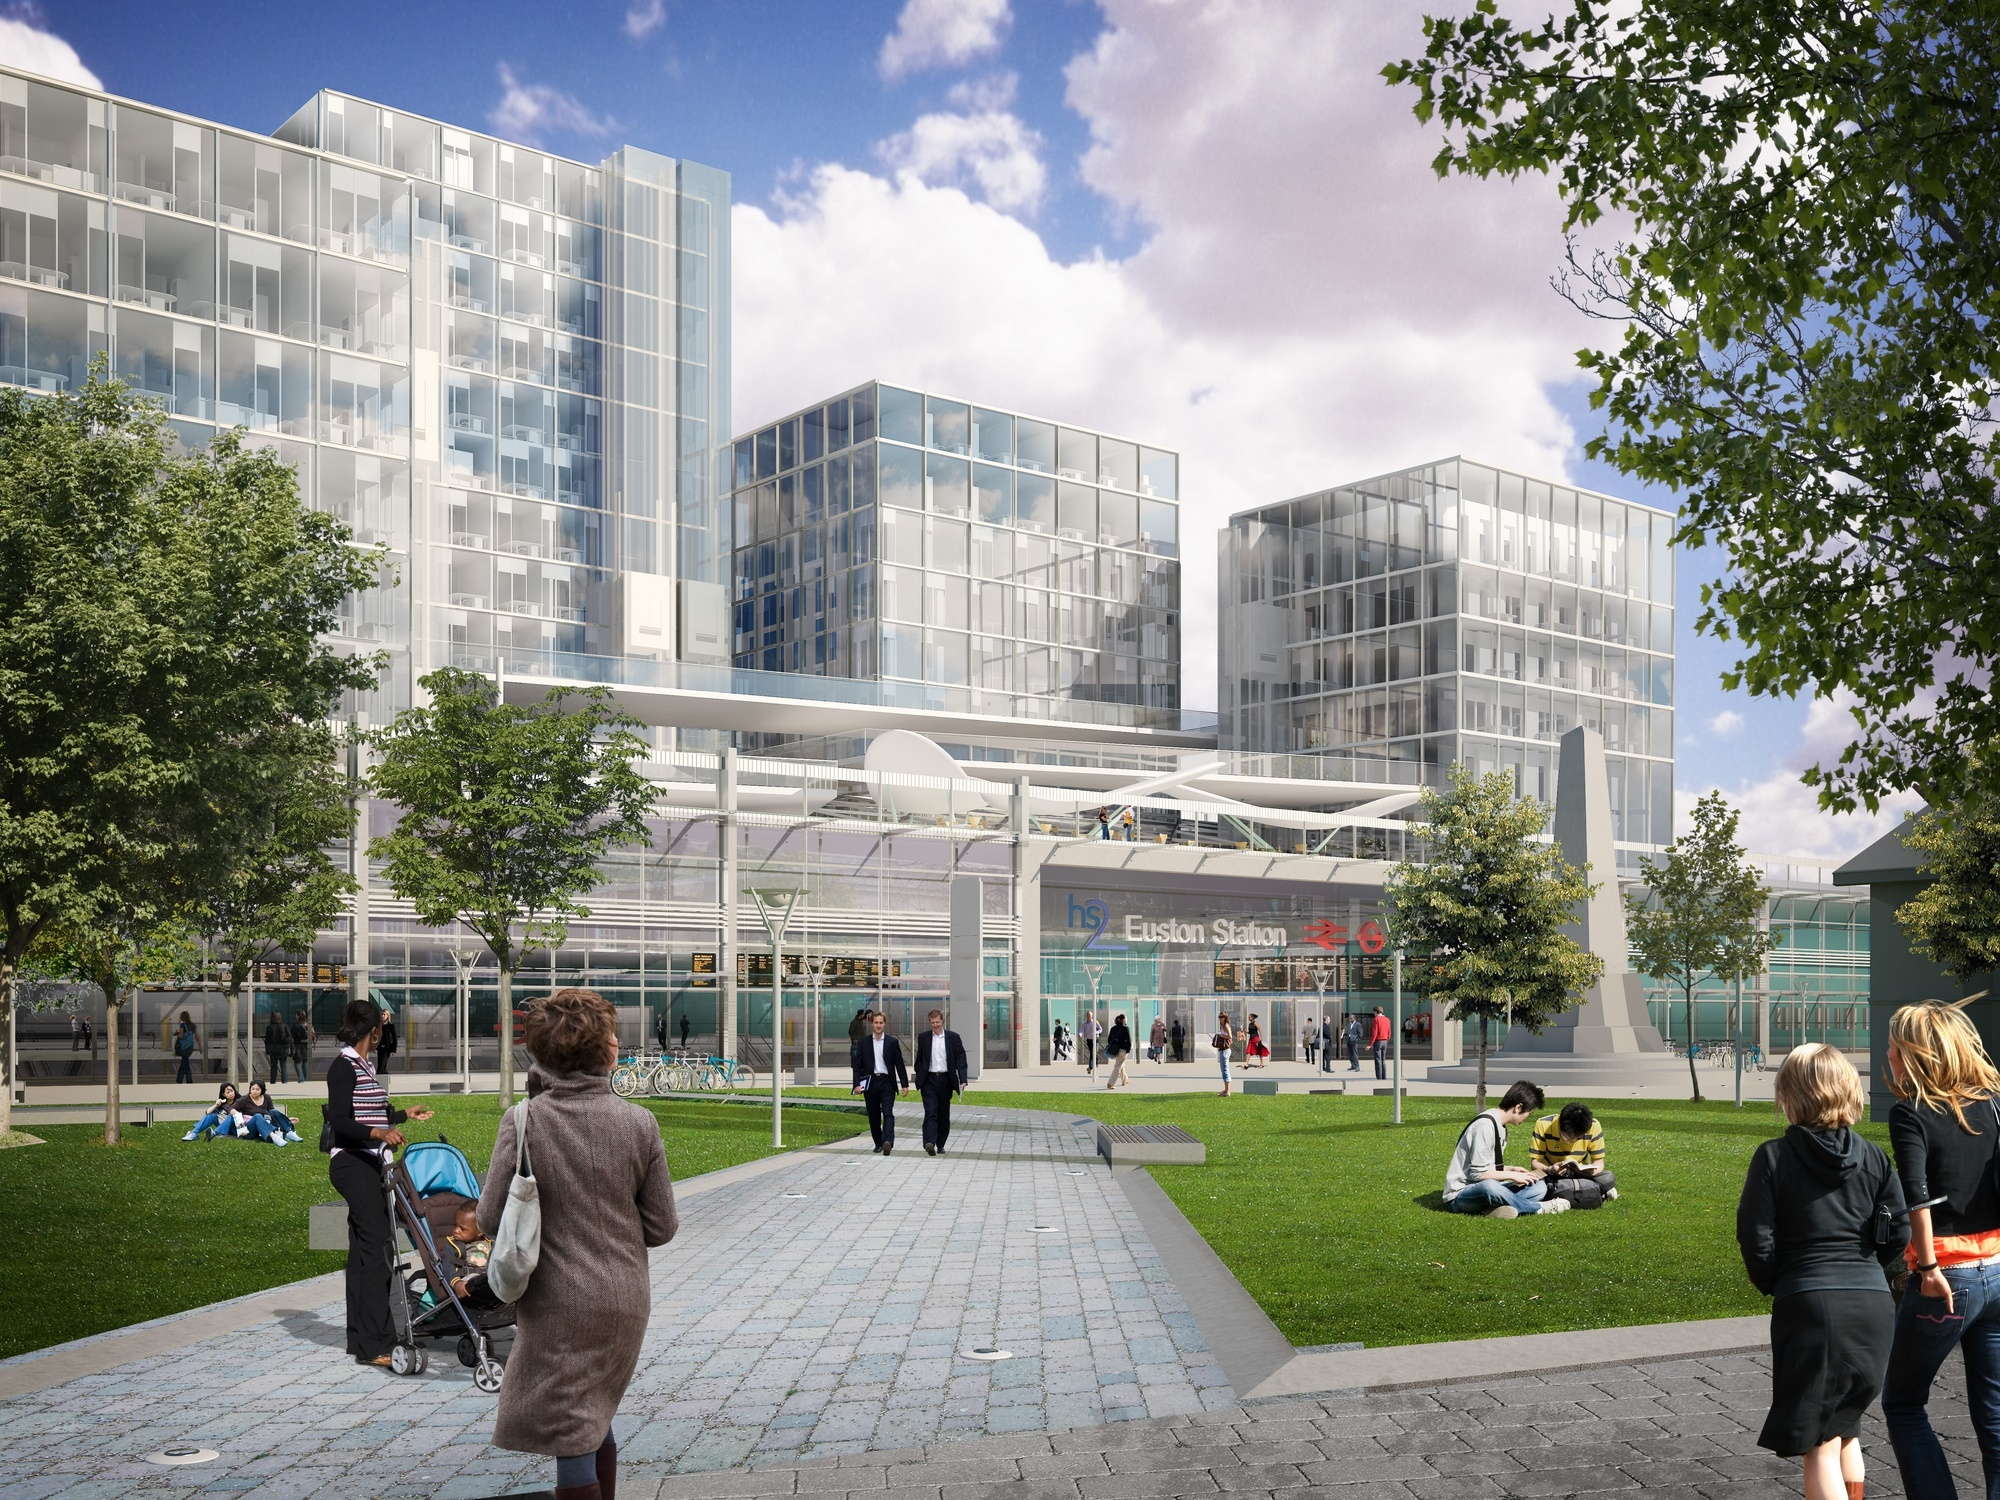 Arup with Grimshaw were originally appointed to work on the redevelopment of Euston train station in 2012